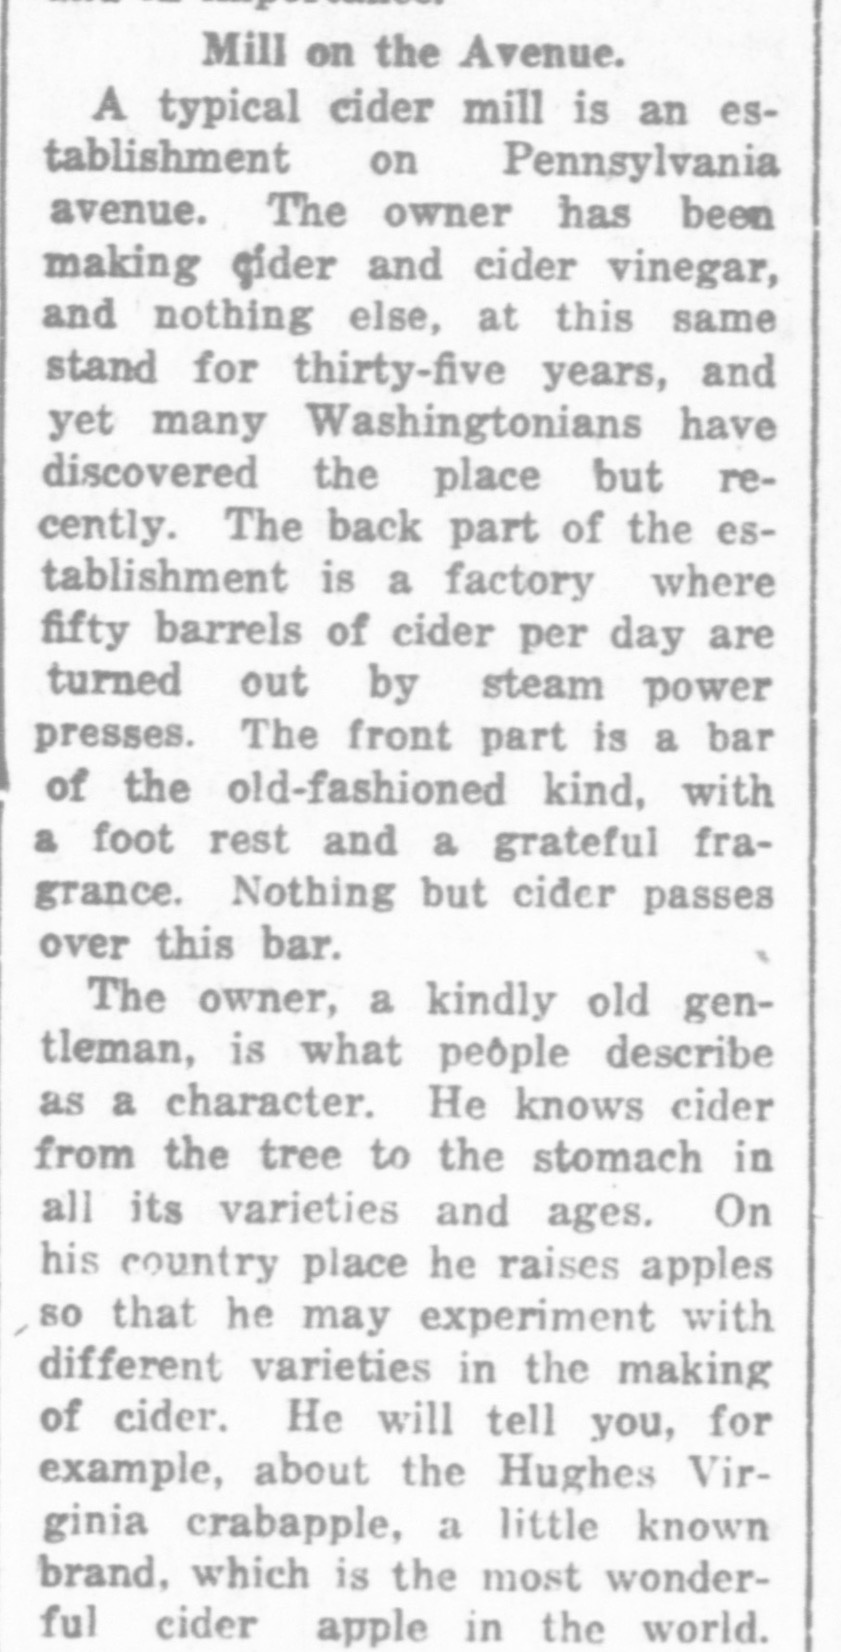 An article from 1919 outlines the best cider apples and DC production of cider